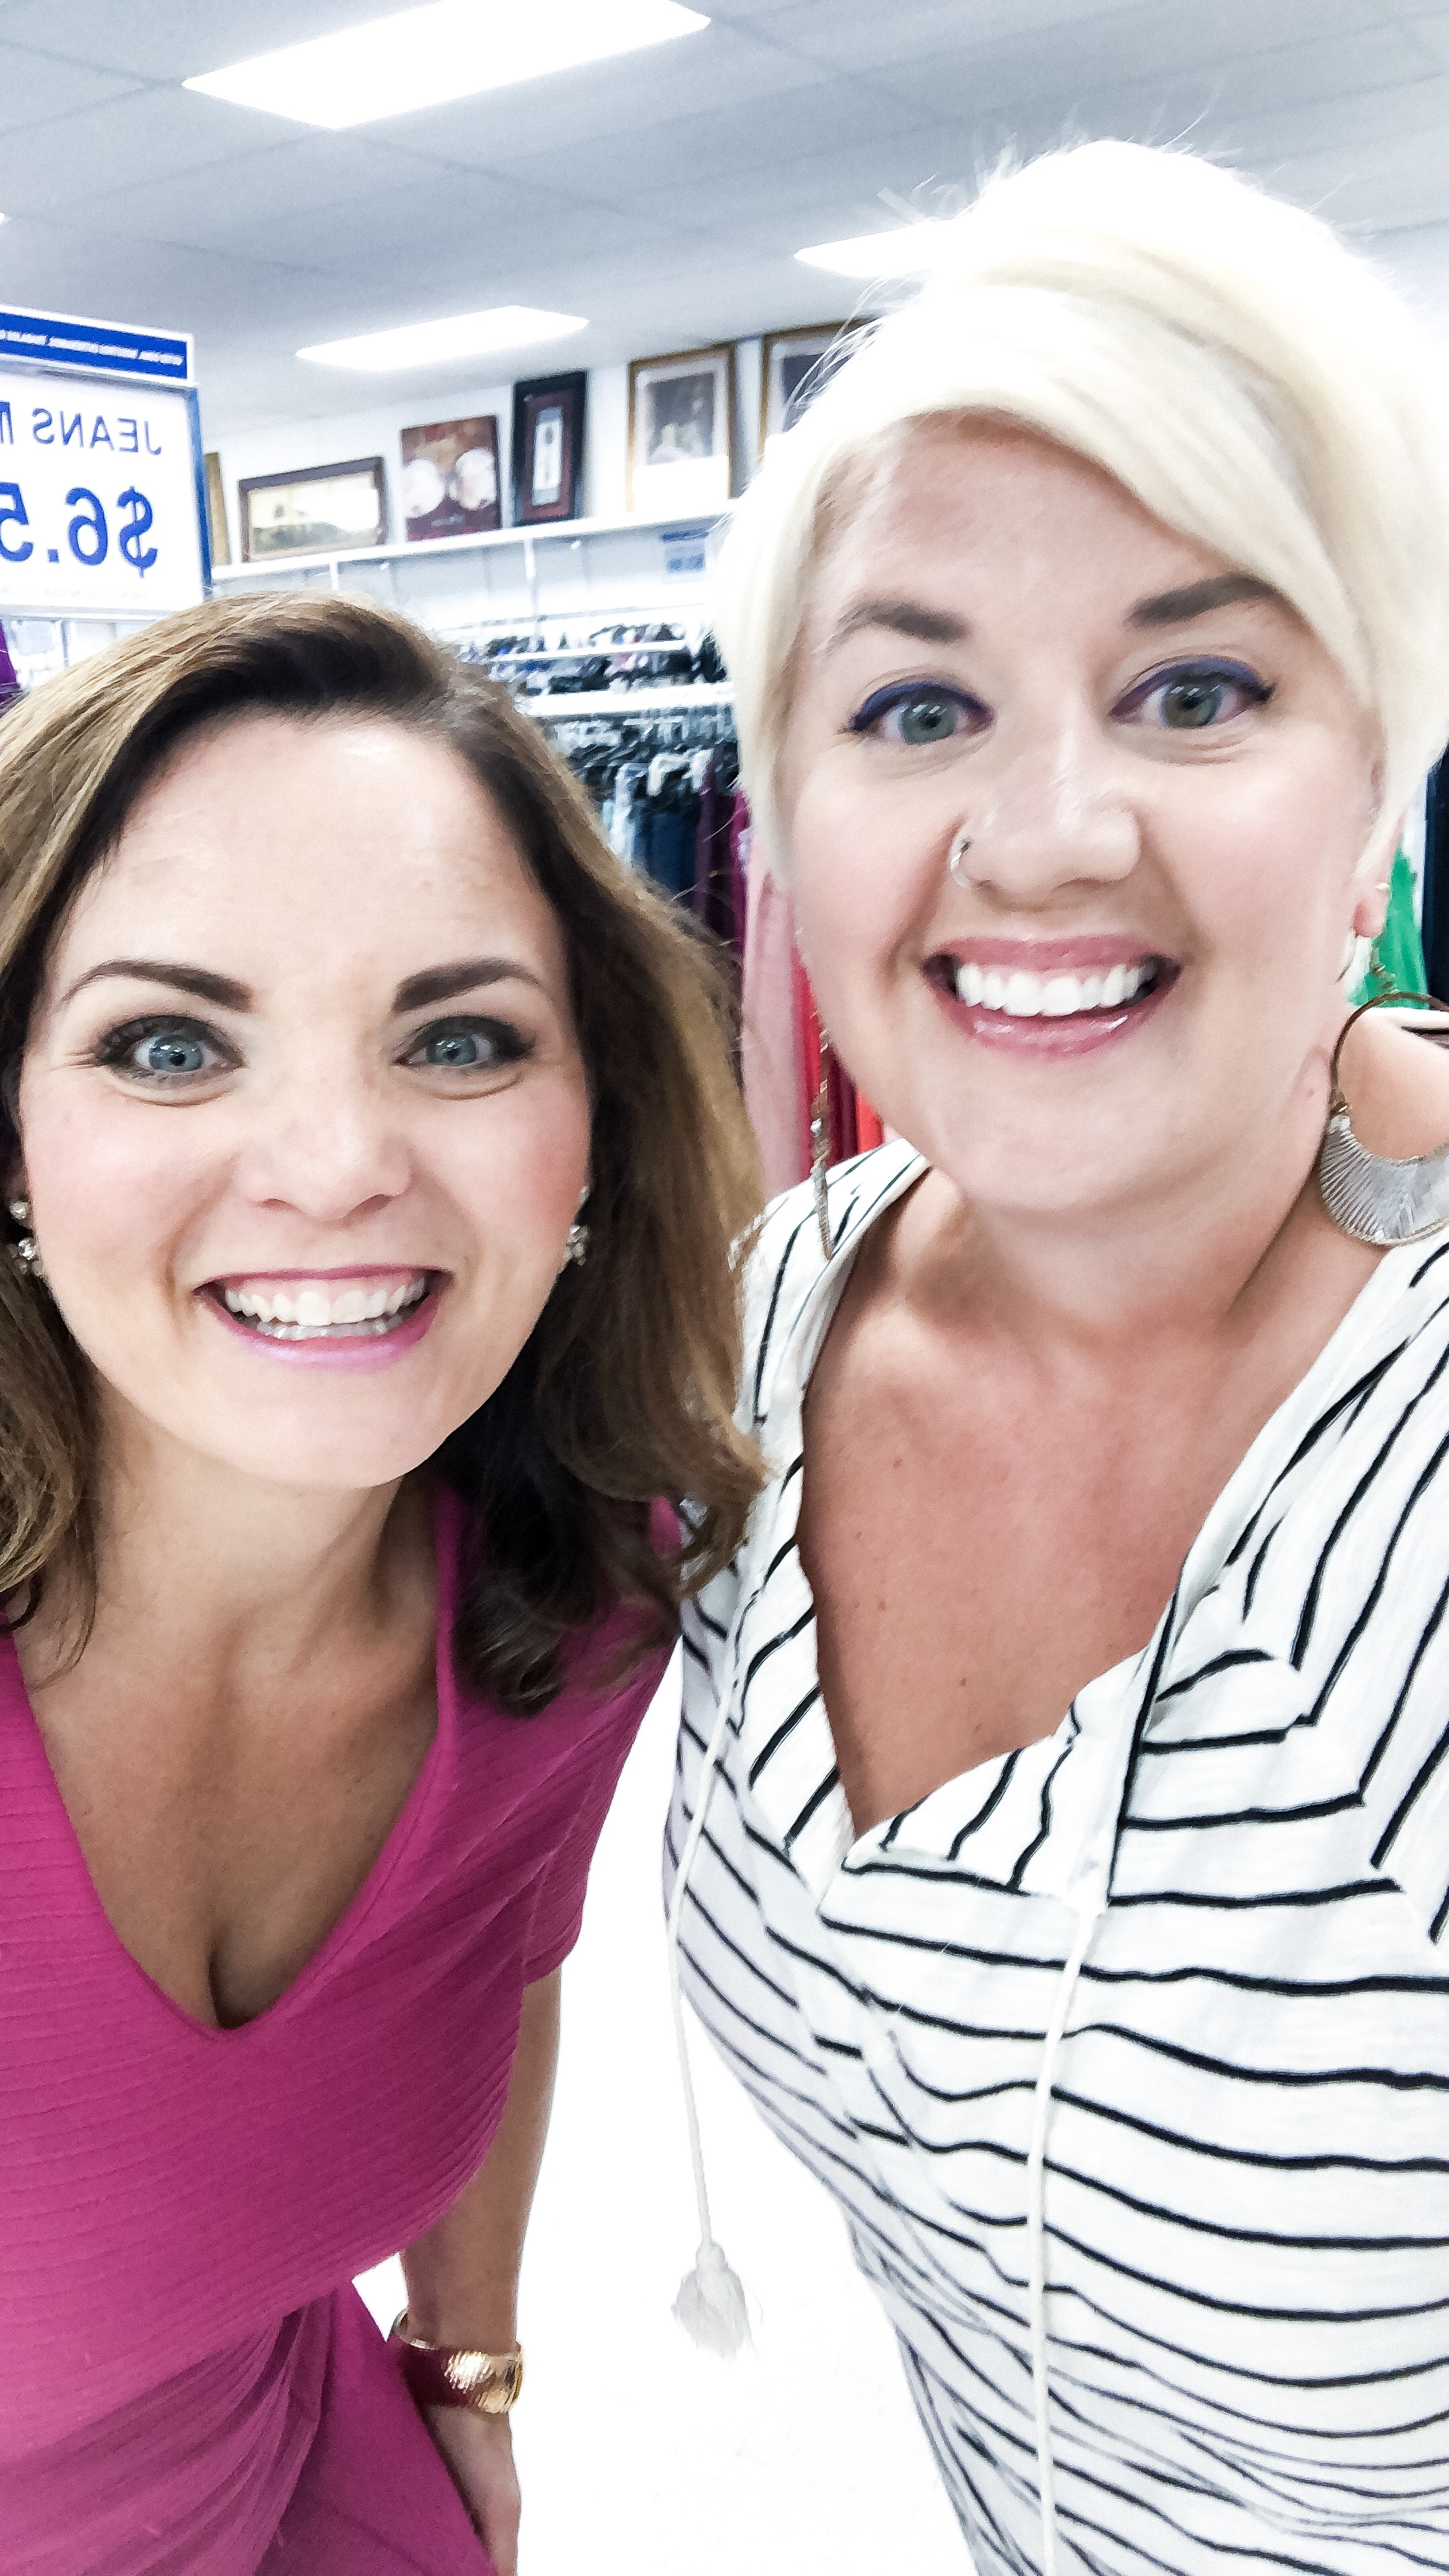 I had a blast being interviewed by Megan Reuther for News Channel 13 Today In Iowa! They wanted to know all the things about how to thrift and decorate your home on a budget, and I was excited to share what I know with them!